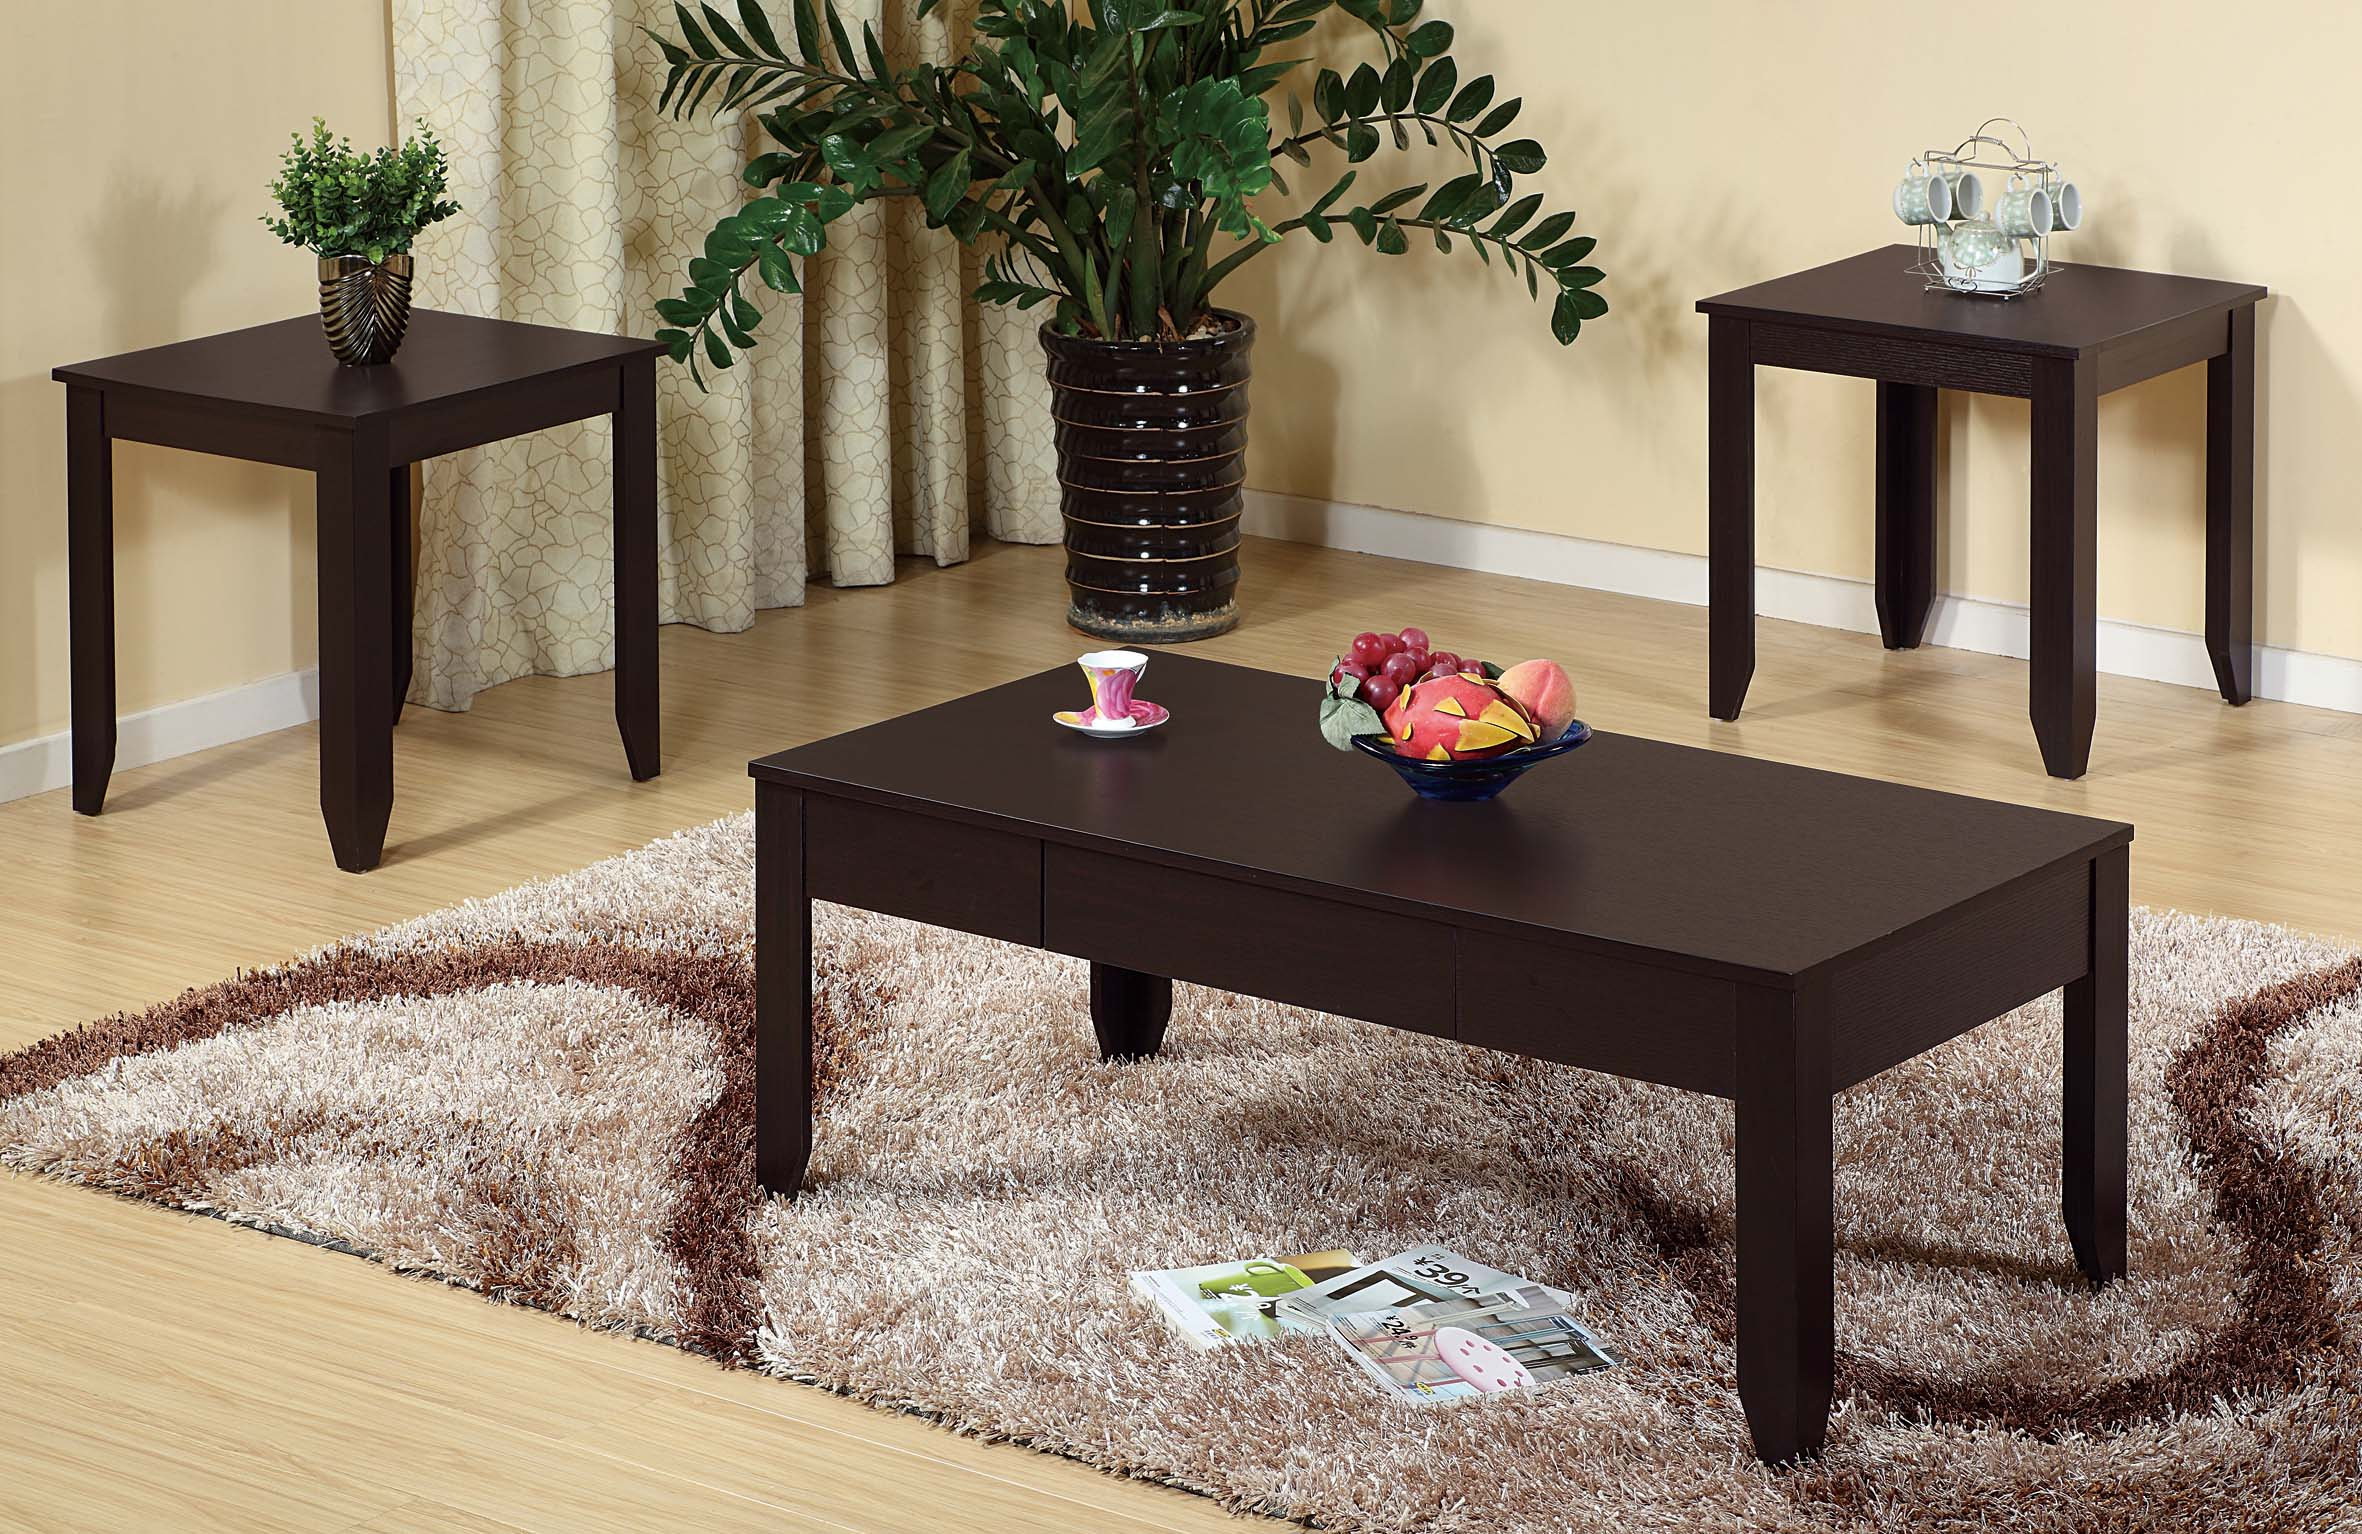 3pc Coffee End Tables Coffee Table Offers One Drawer On Metal Glides Marjen Of Chicago